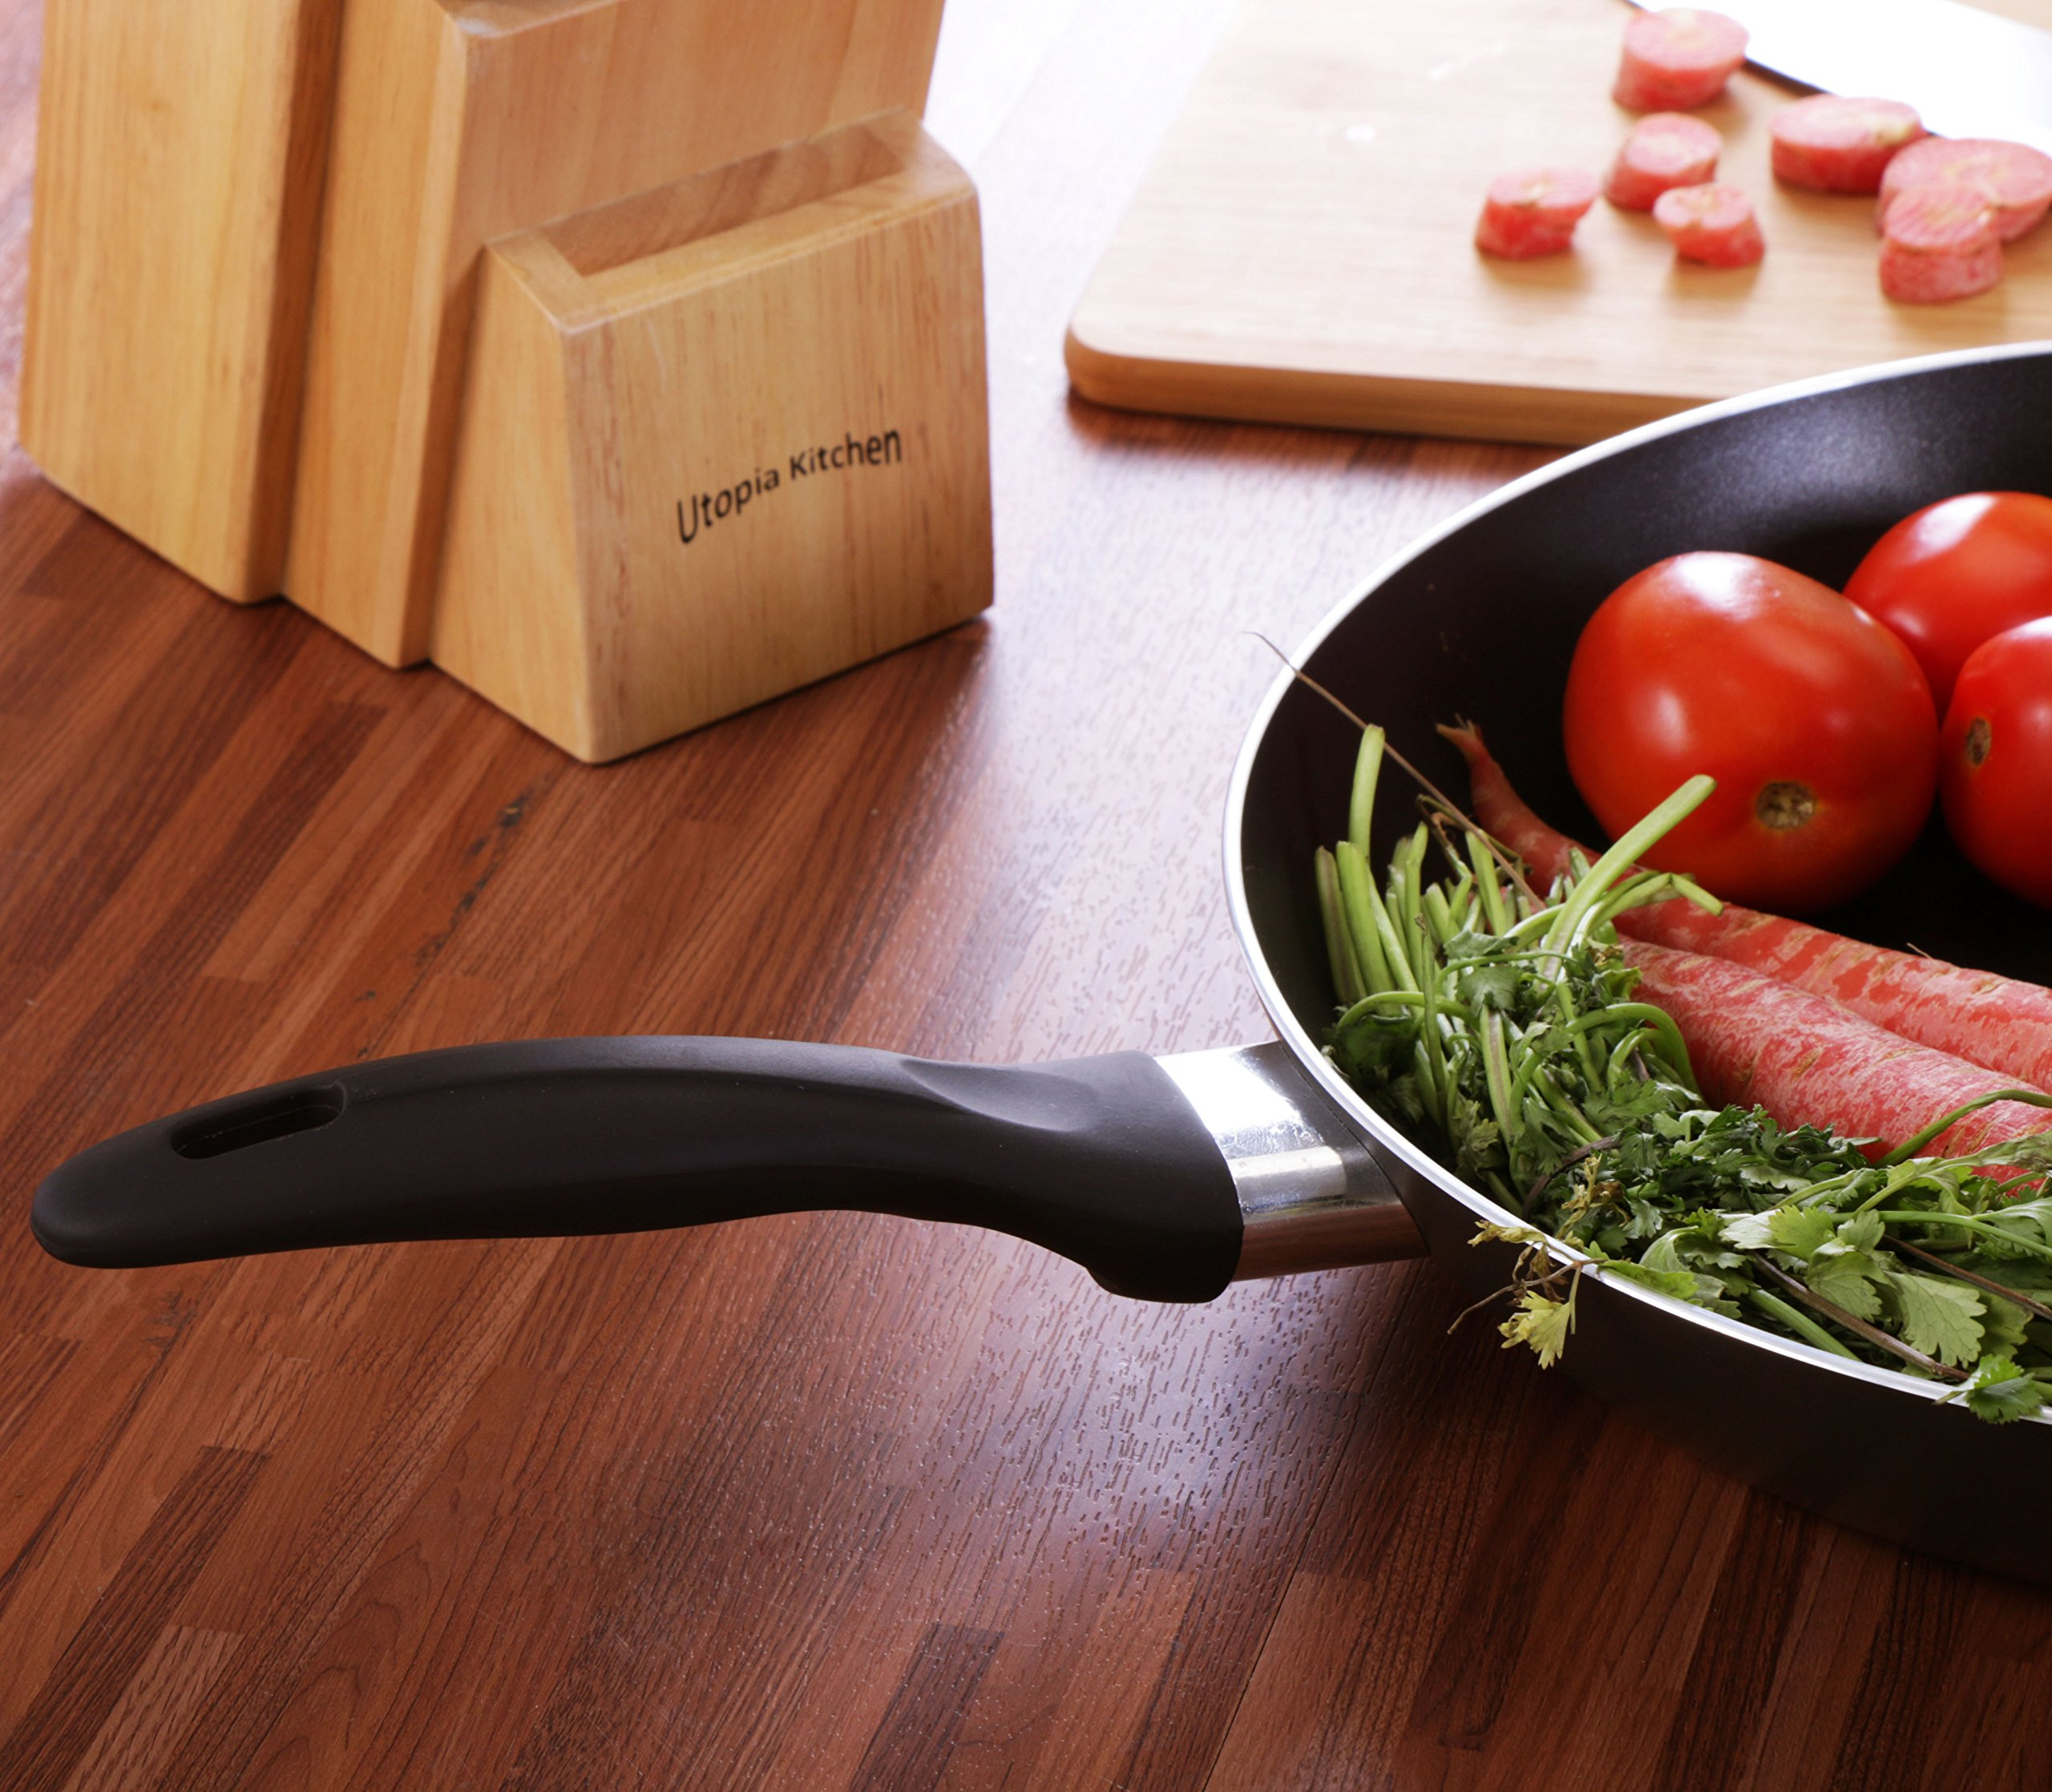 Induction Bottom Aluminum Nonstick Frying-Pan Grey Fry Pan - 11 inches Dishwasher Safe Cookware - by Utopia Kitchen by Utopia Kitchen (Image #6)